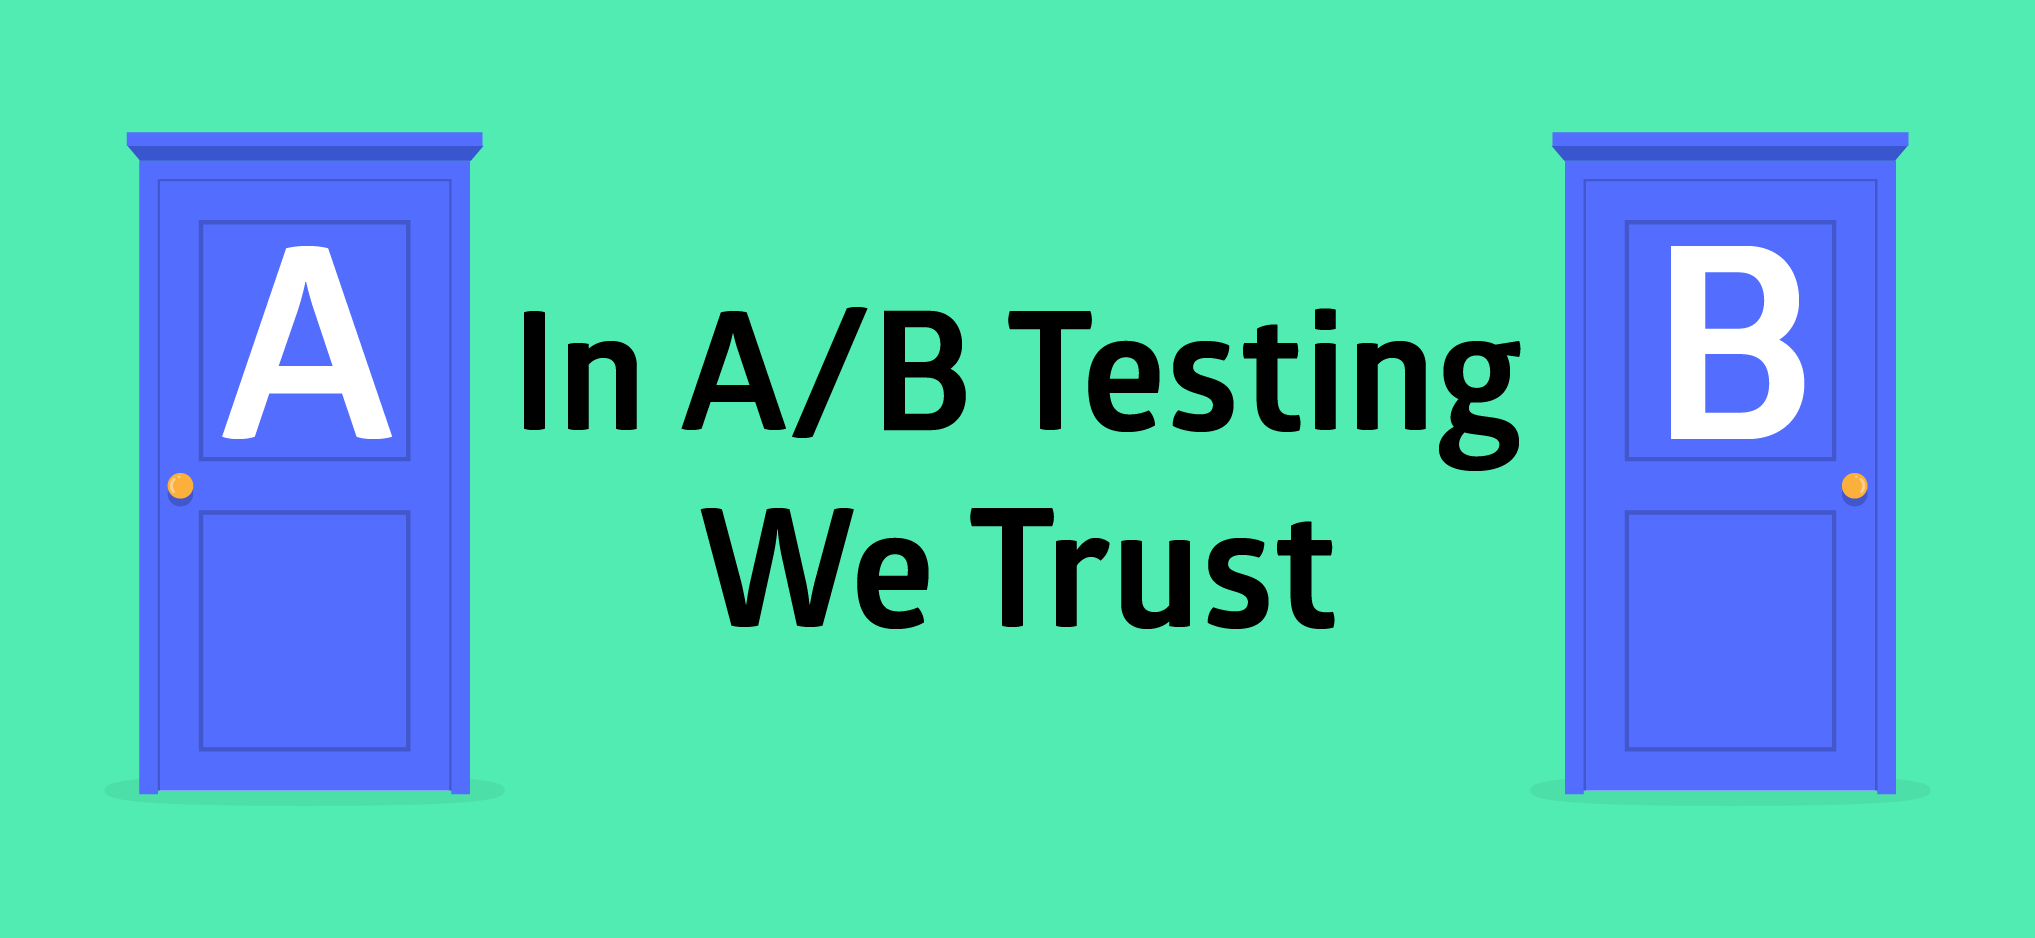 Idea Theorem- In A/B Testing We Trust